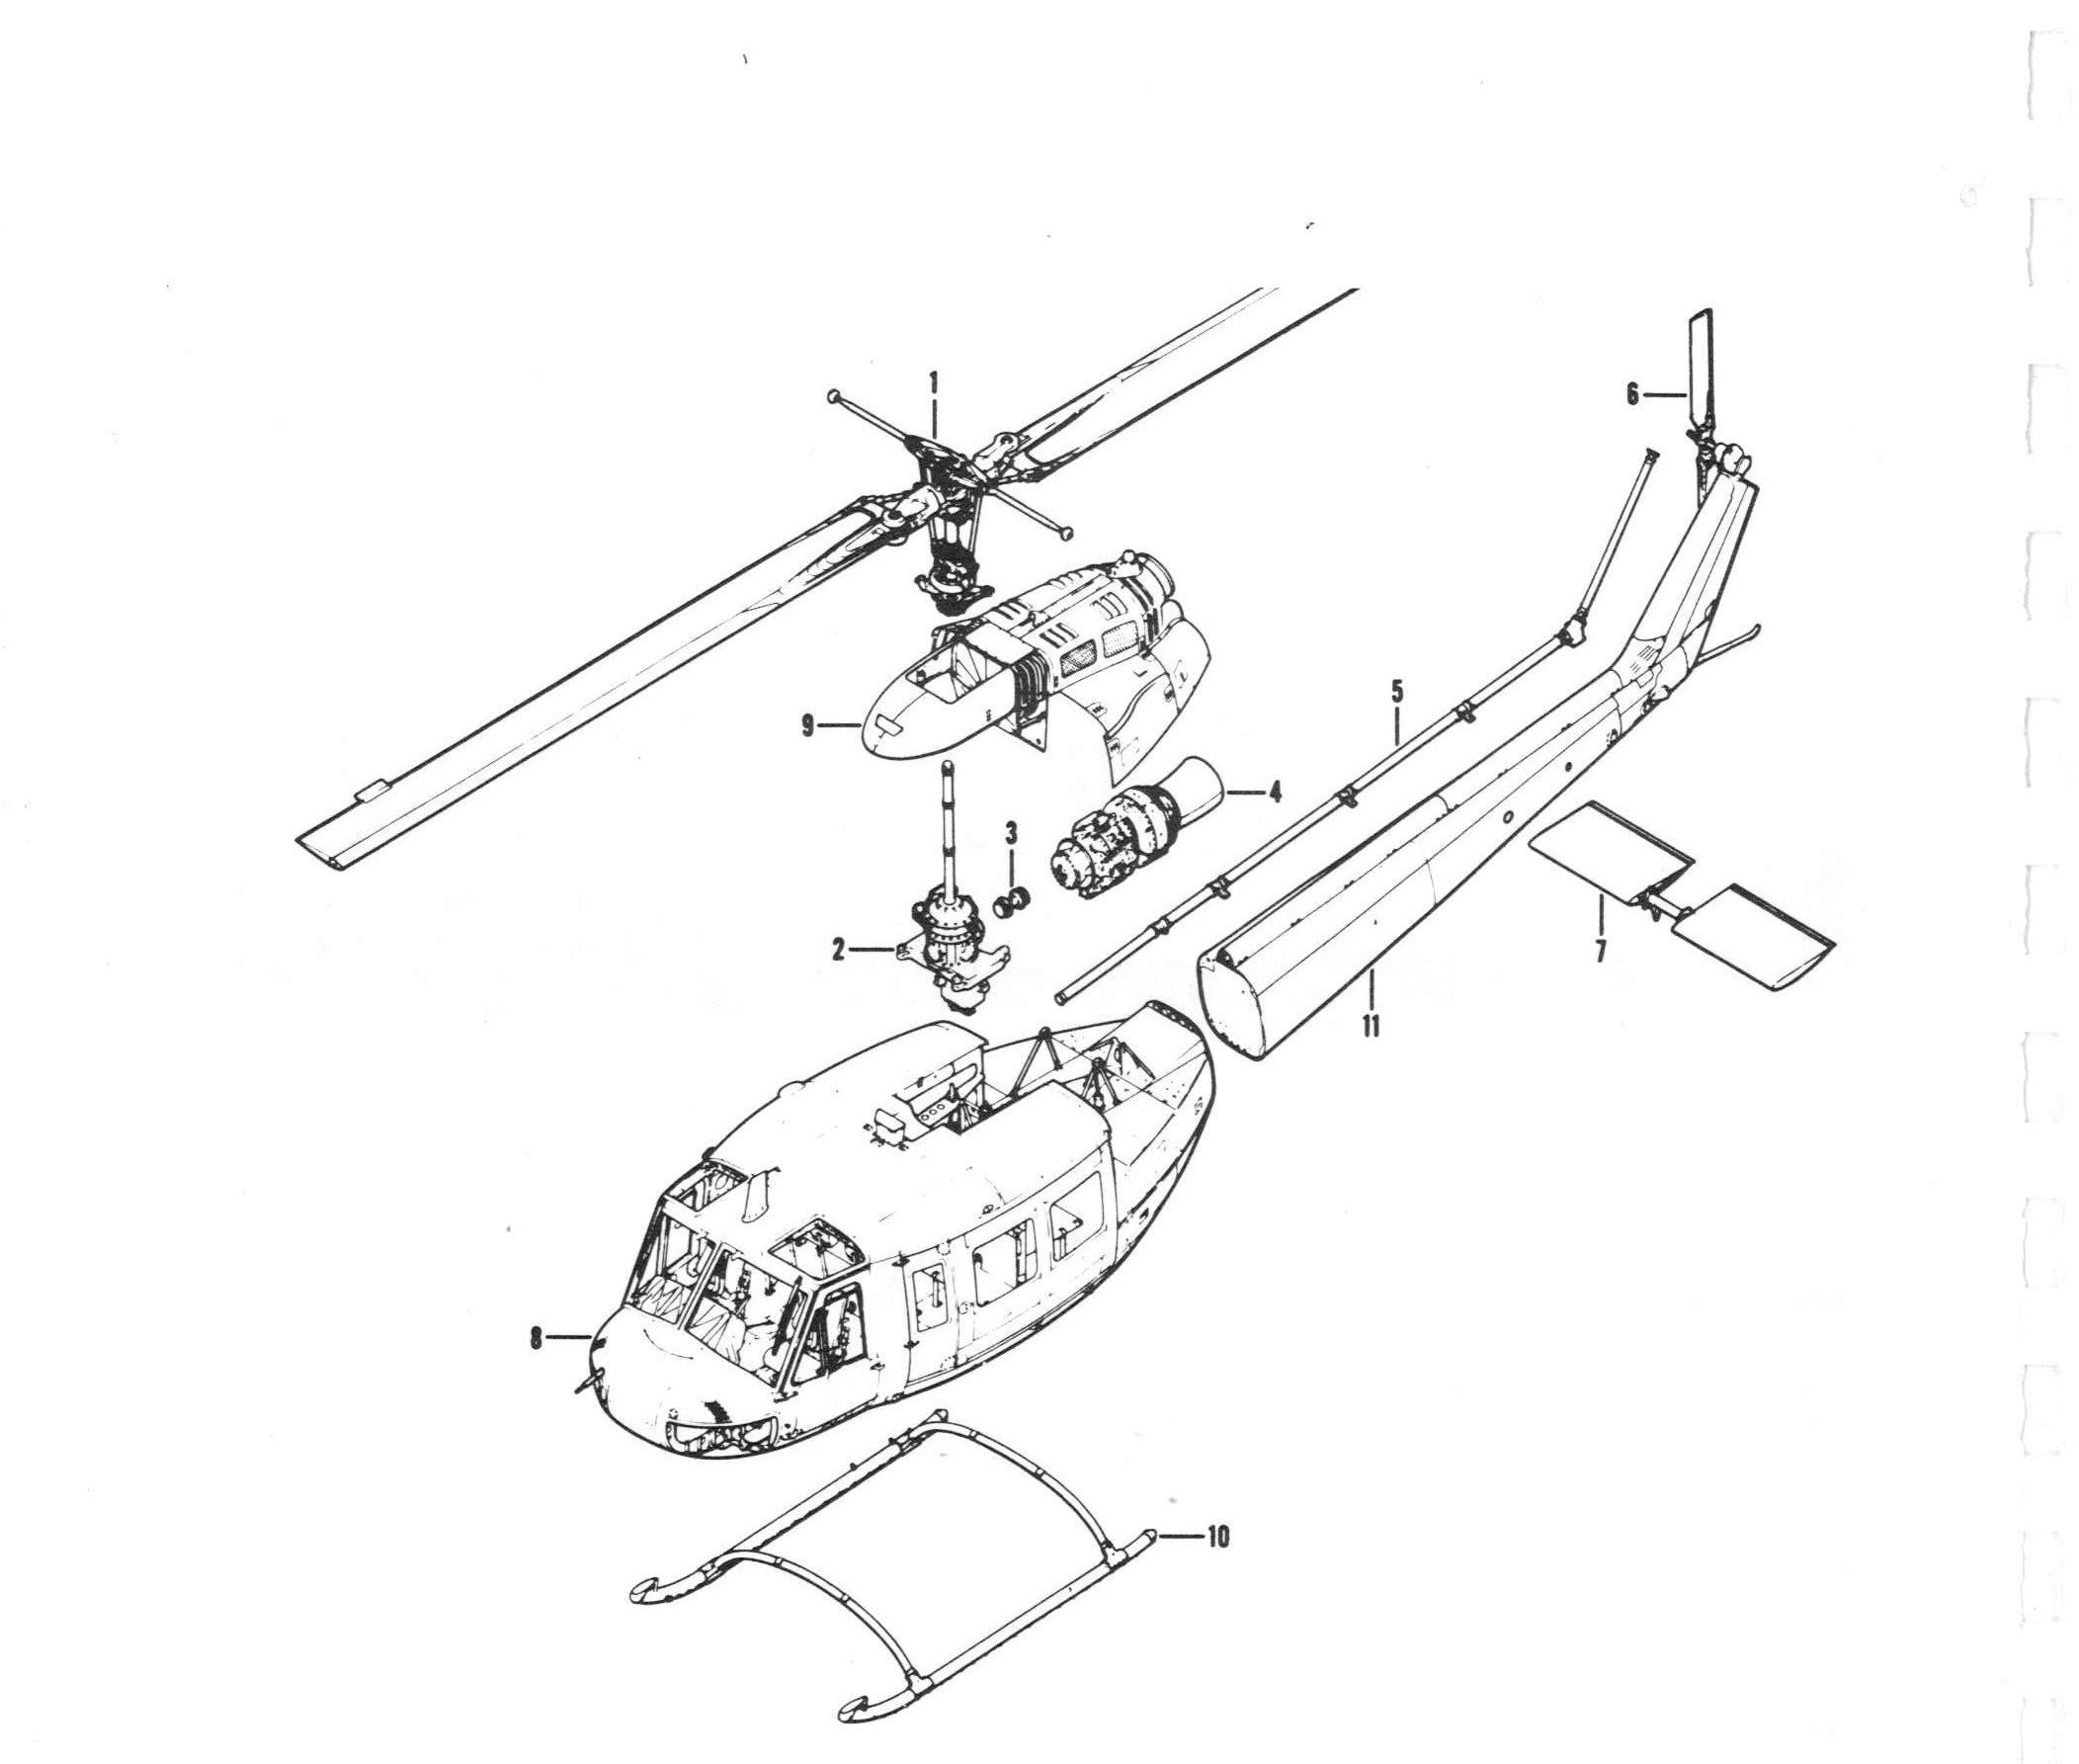 Exploded view of helicopter